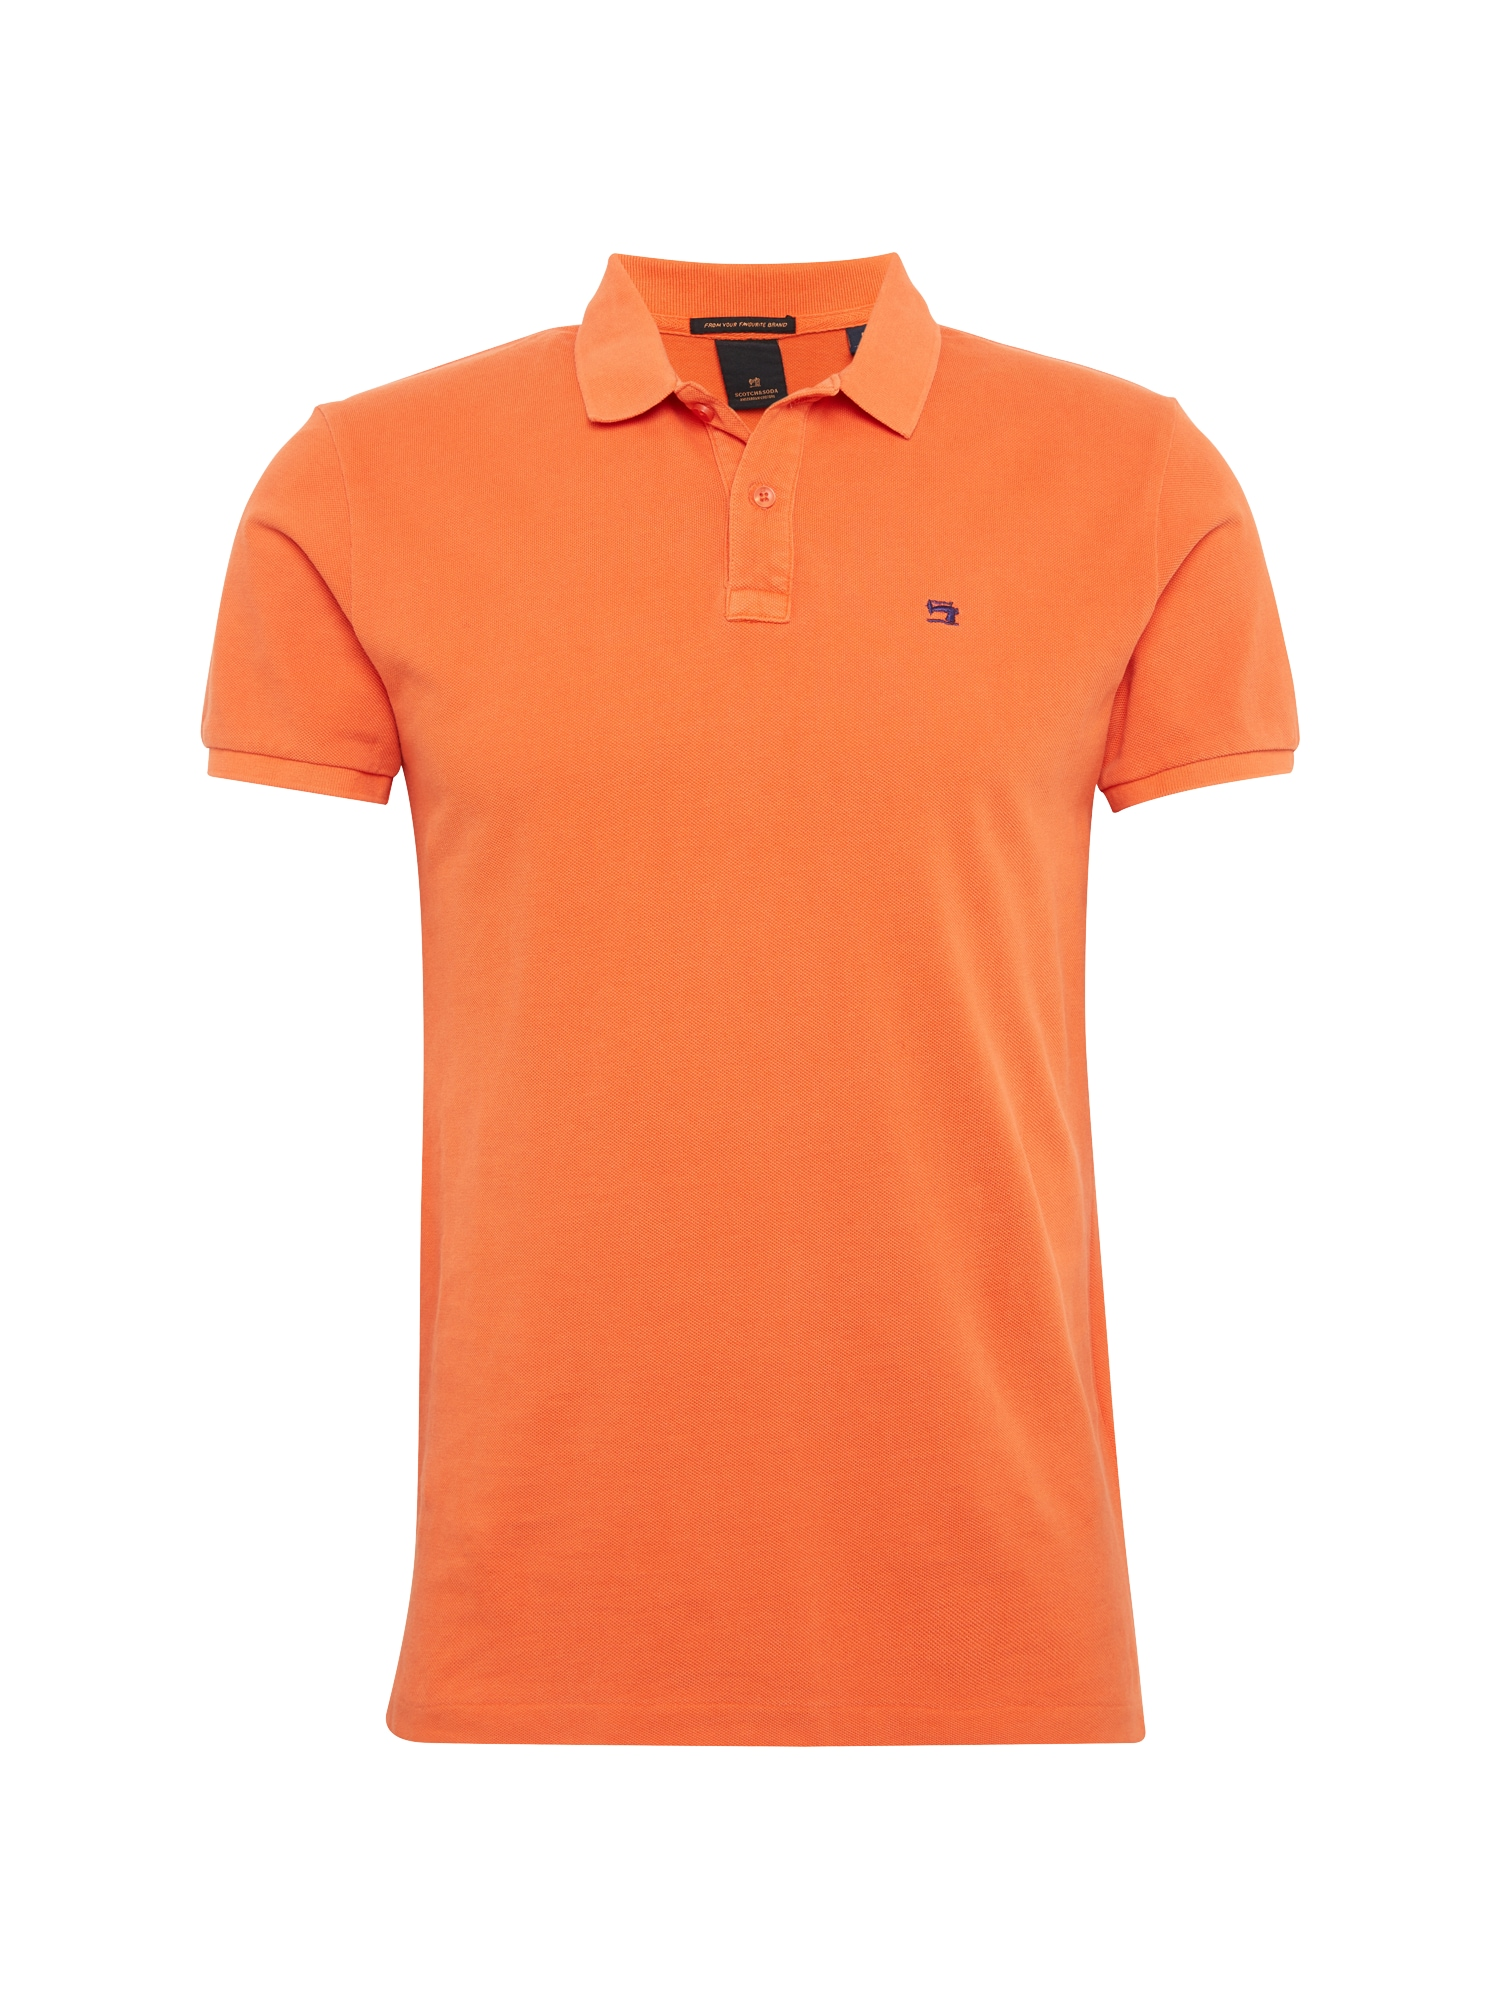 SCOTCH  and  SODA Heren Shirt Classic garment-dyed pique donkeroranje